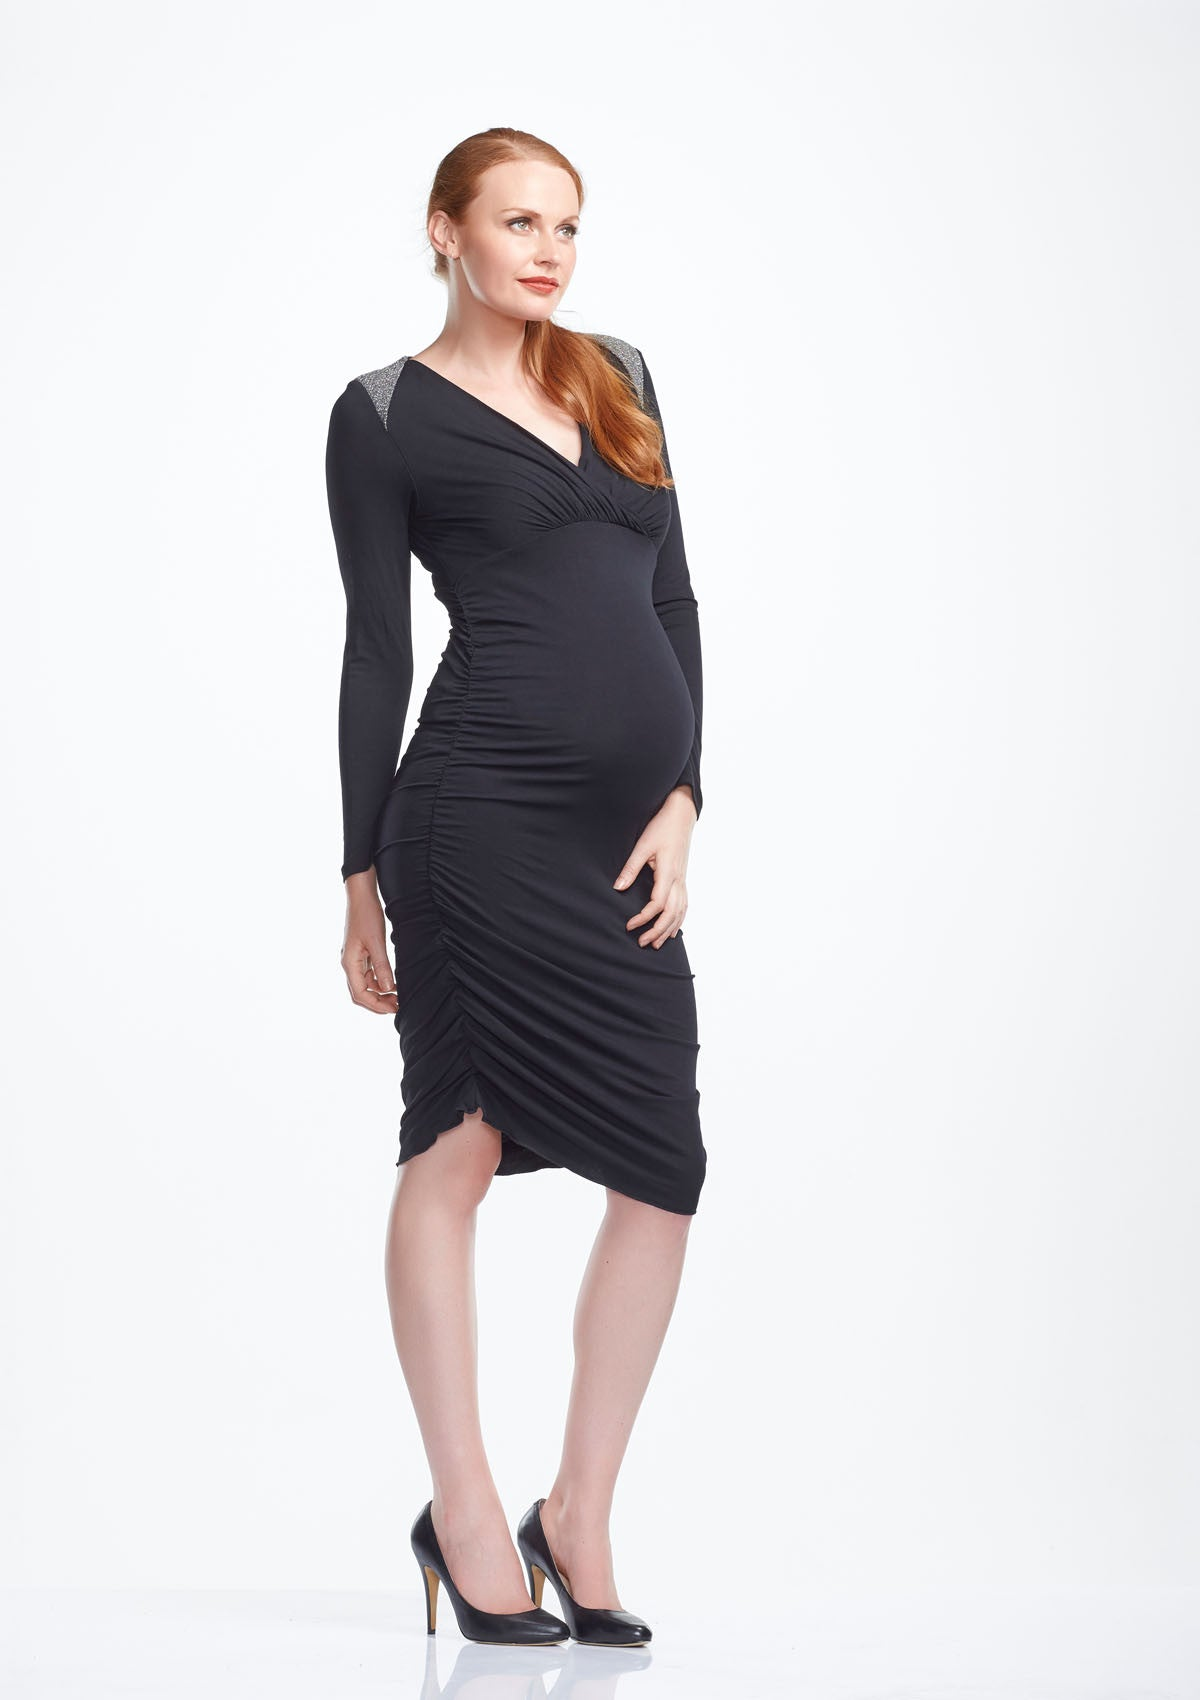 a64e0ce9b6c60 ... Soon Krystal Long Sleeve Maternity Dress from front - Tops & Dresses -  twohatch.com ...